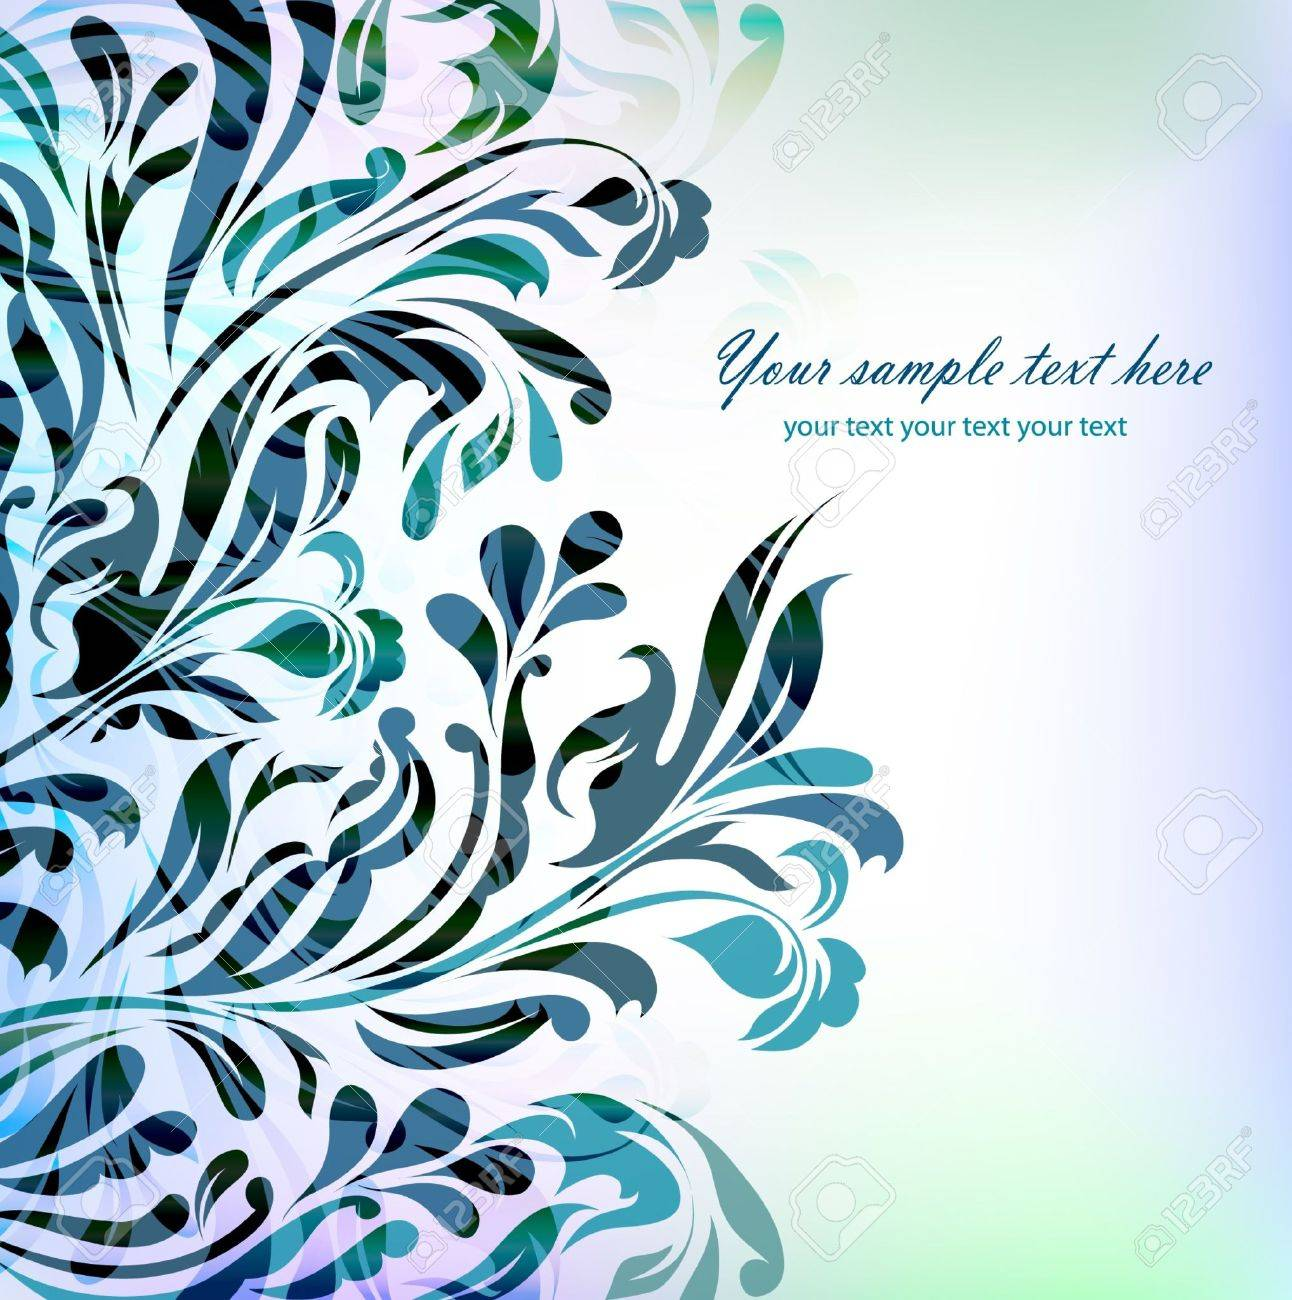 Abstract Blue Floral Background Mit Ihrem Text Für Ihre Karte ...